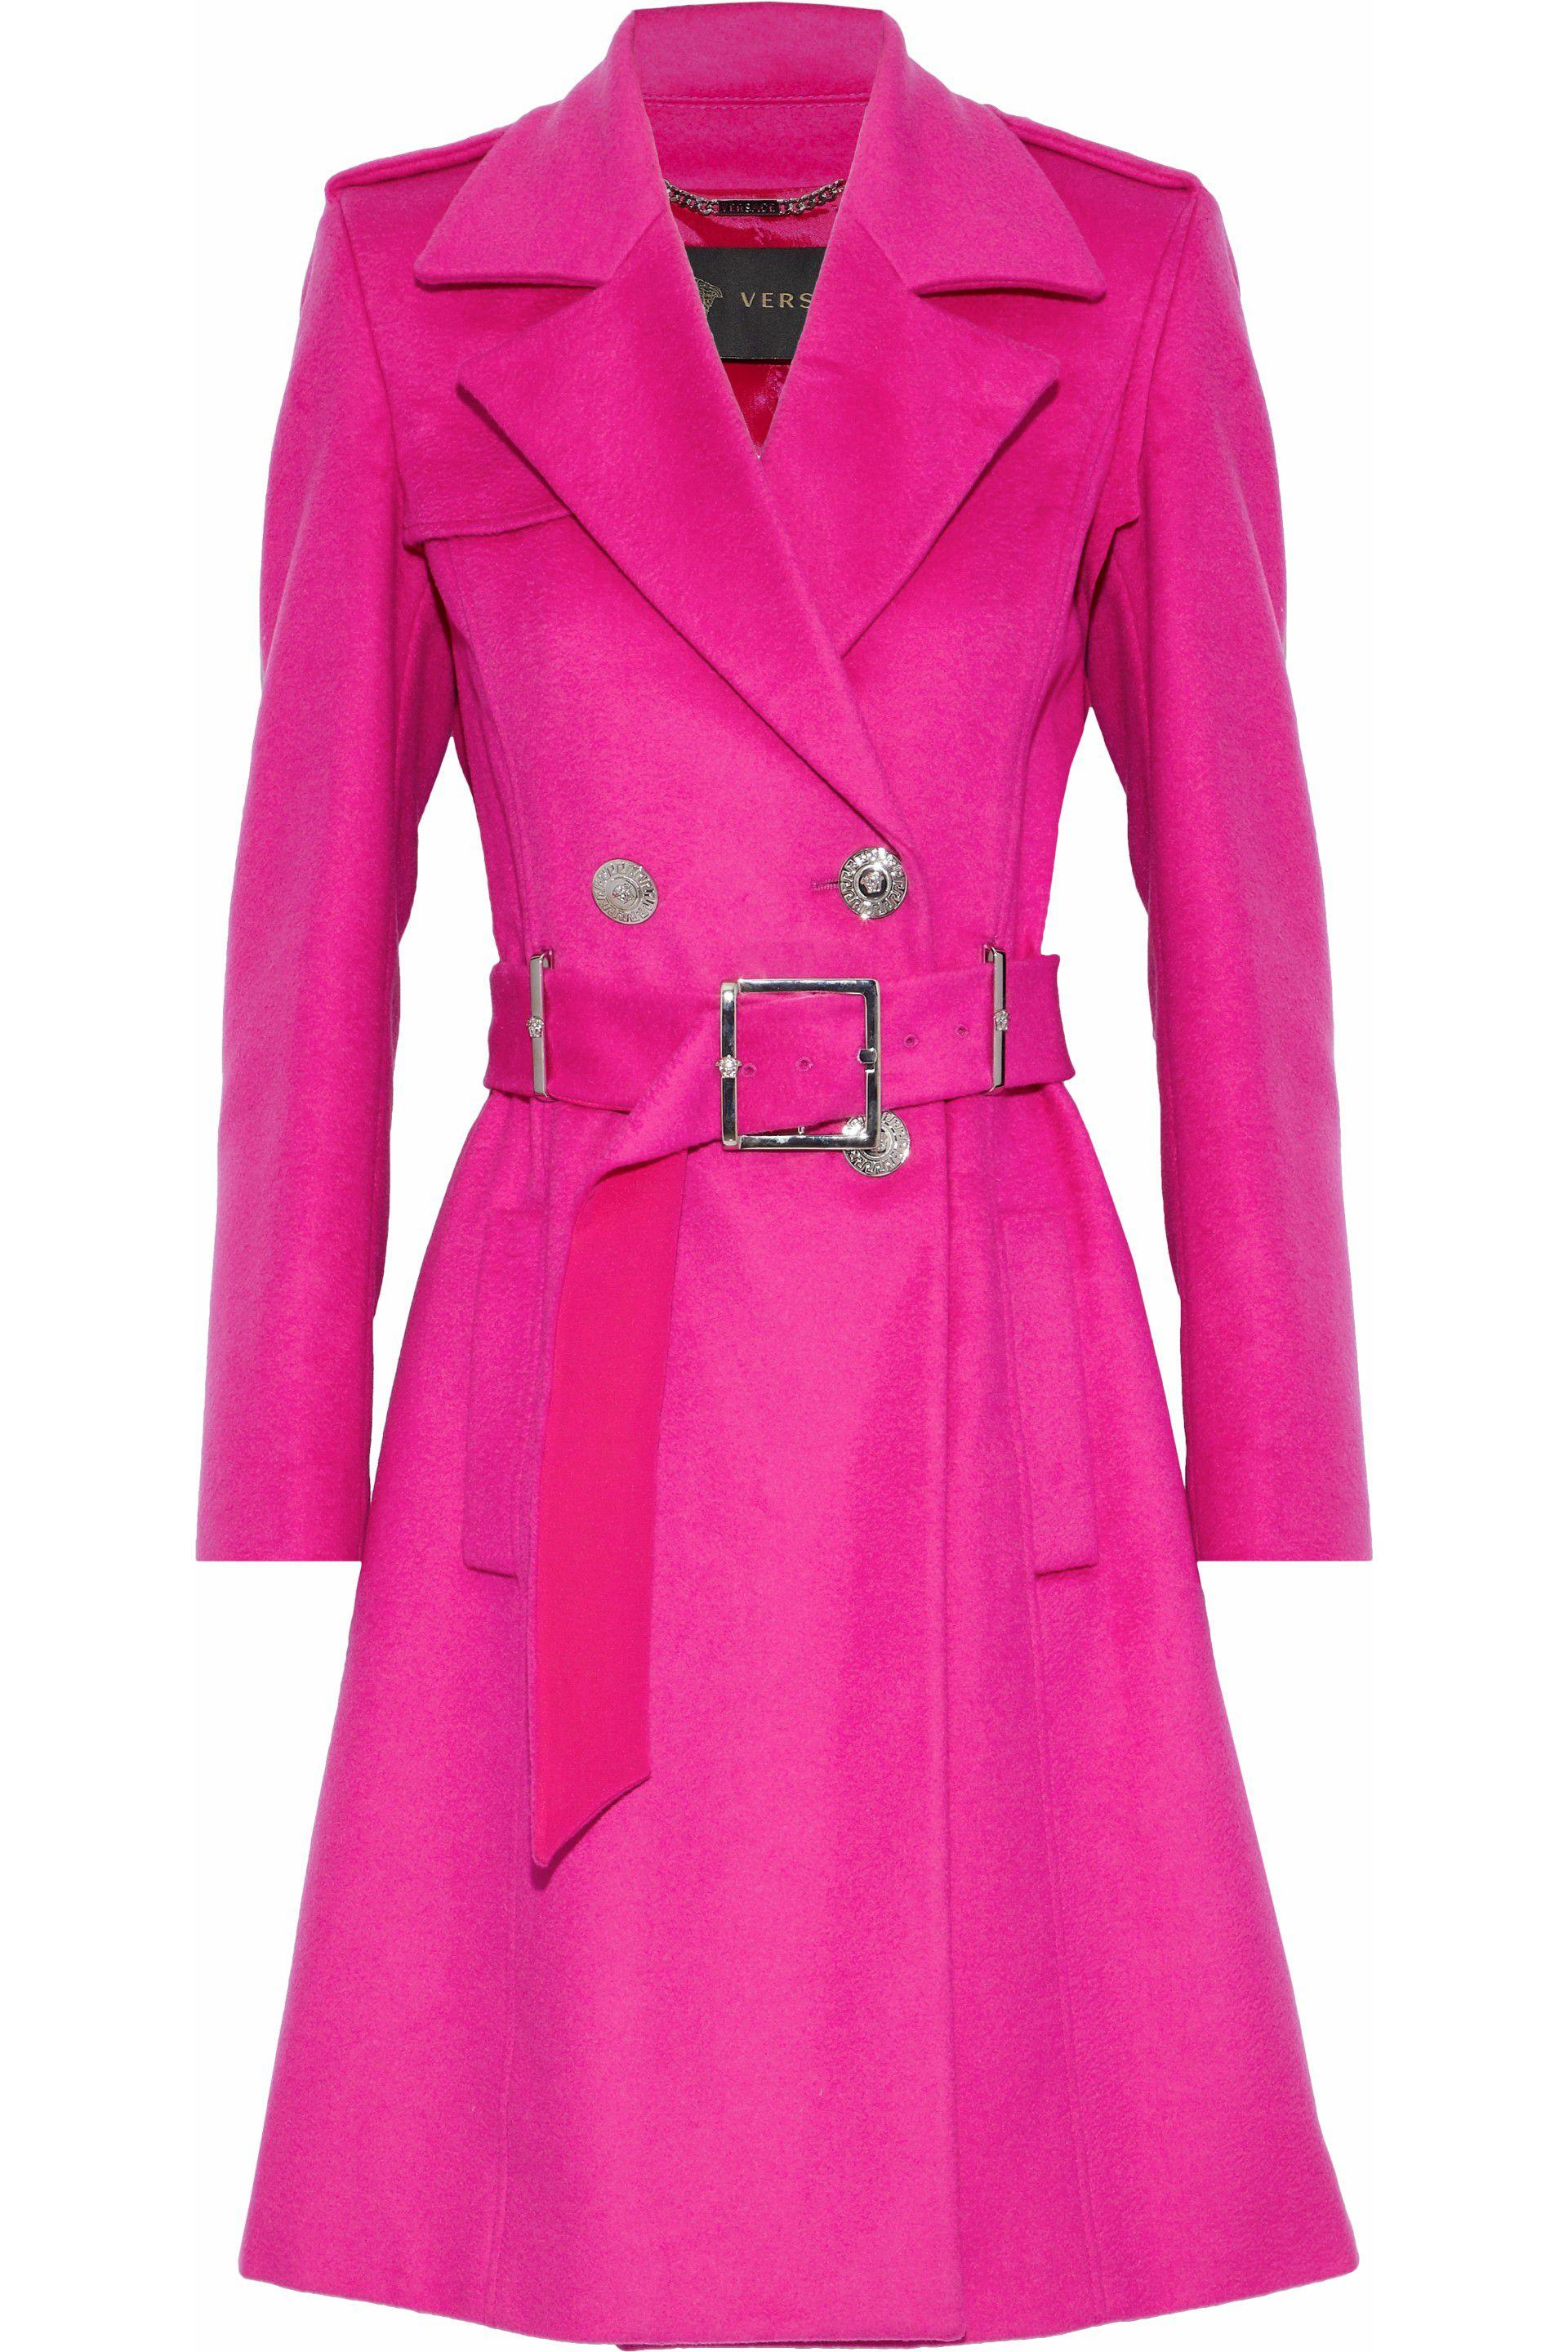 f0a7e28136264 Versace Woman Wool And Cashmere-blend Trench Coat Fuchsia in Pink - Lyst